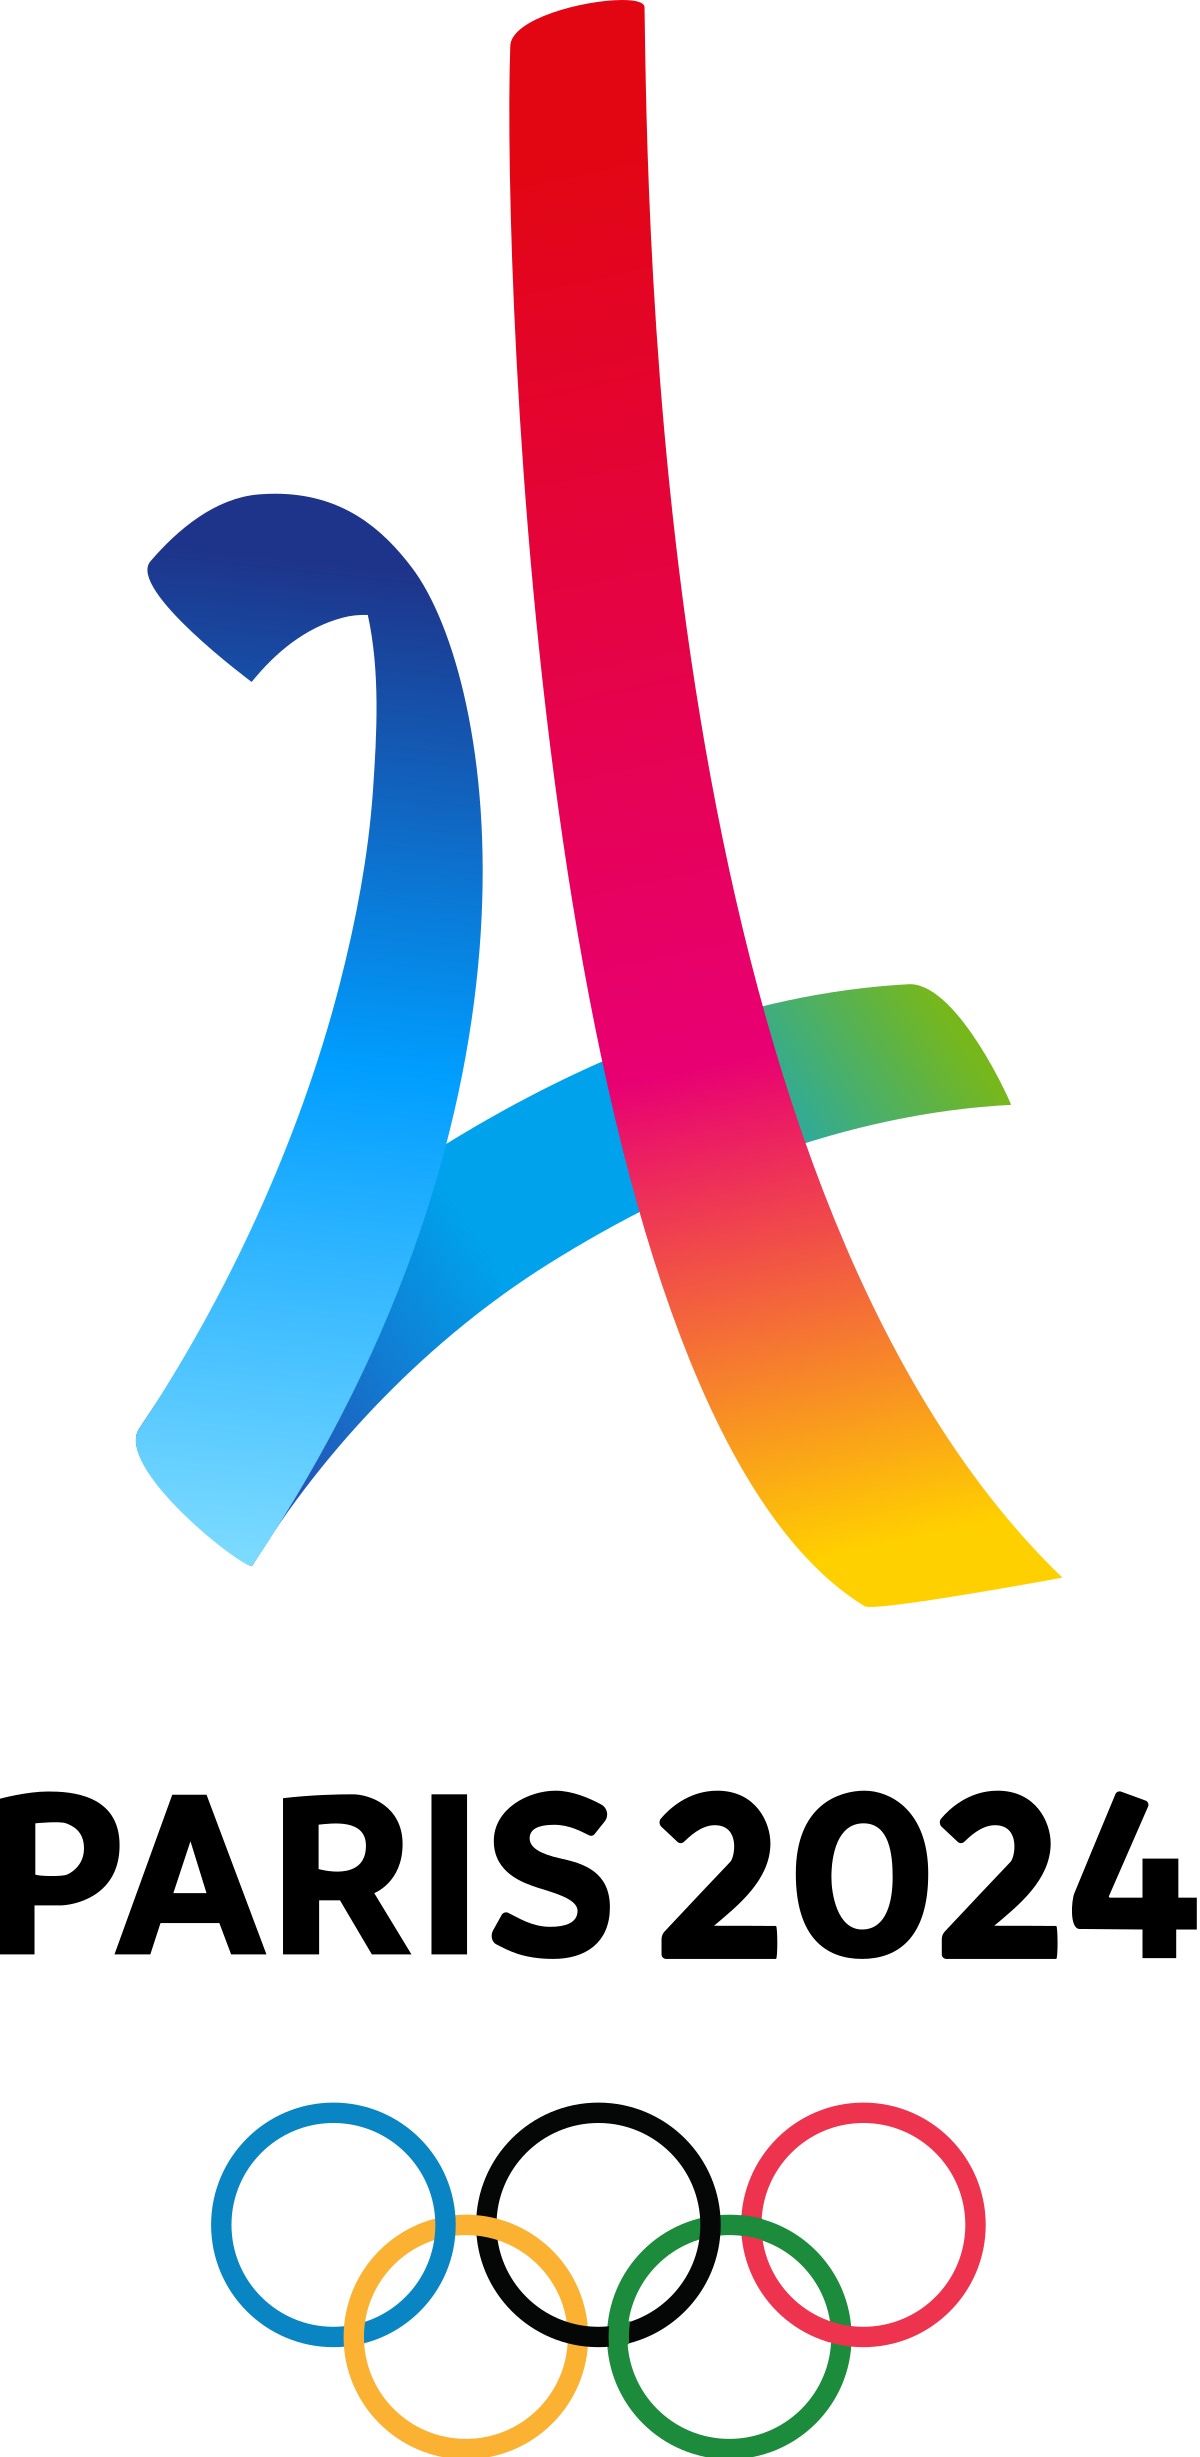 The Paris 2024 Olympics logo has been released and ...